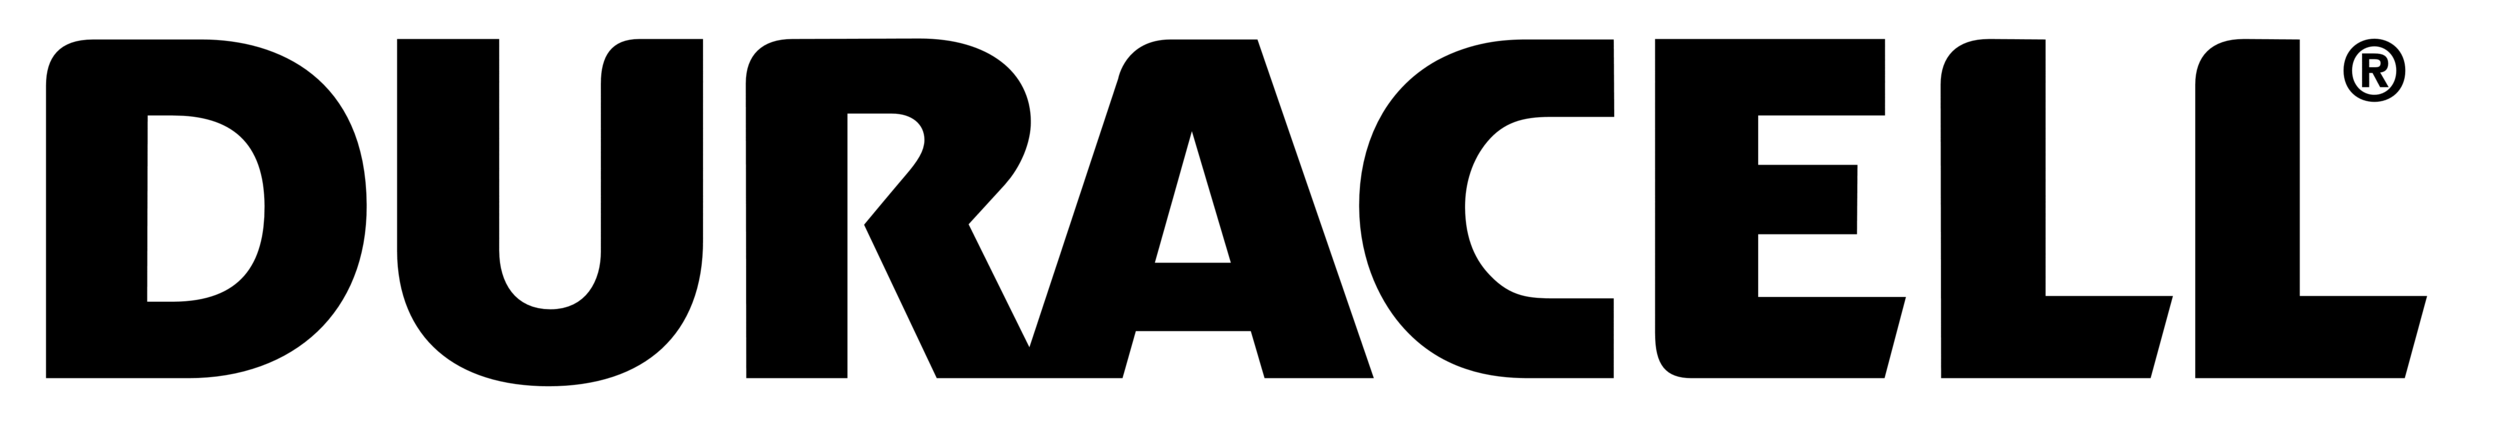 Duracell_logo.png